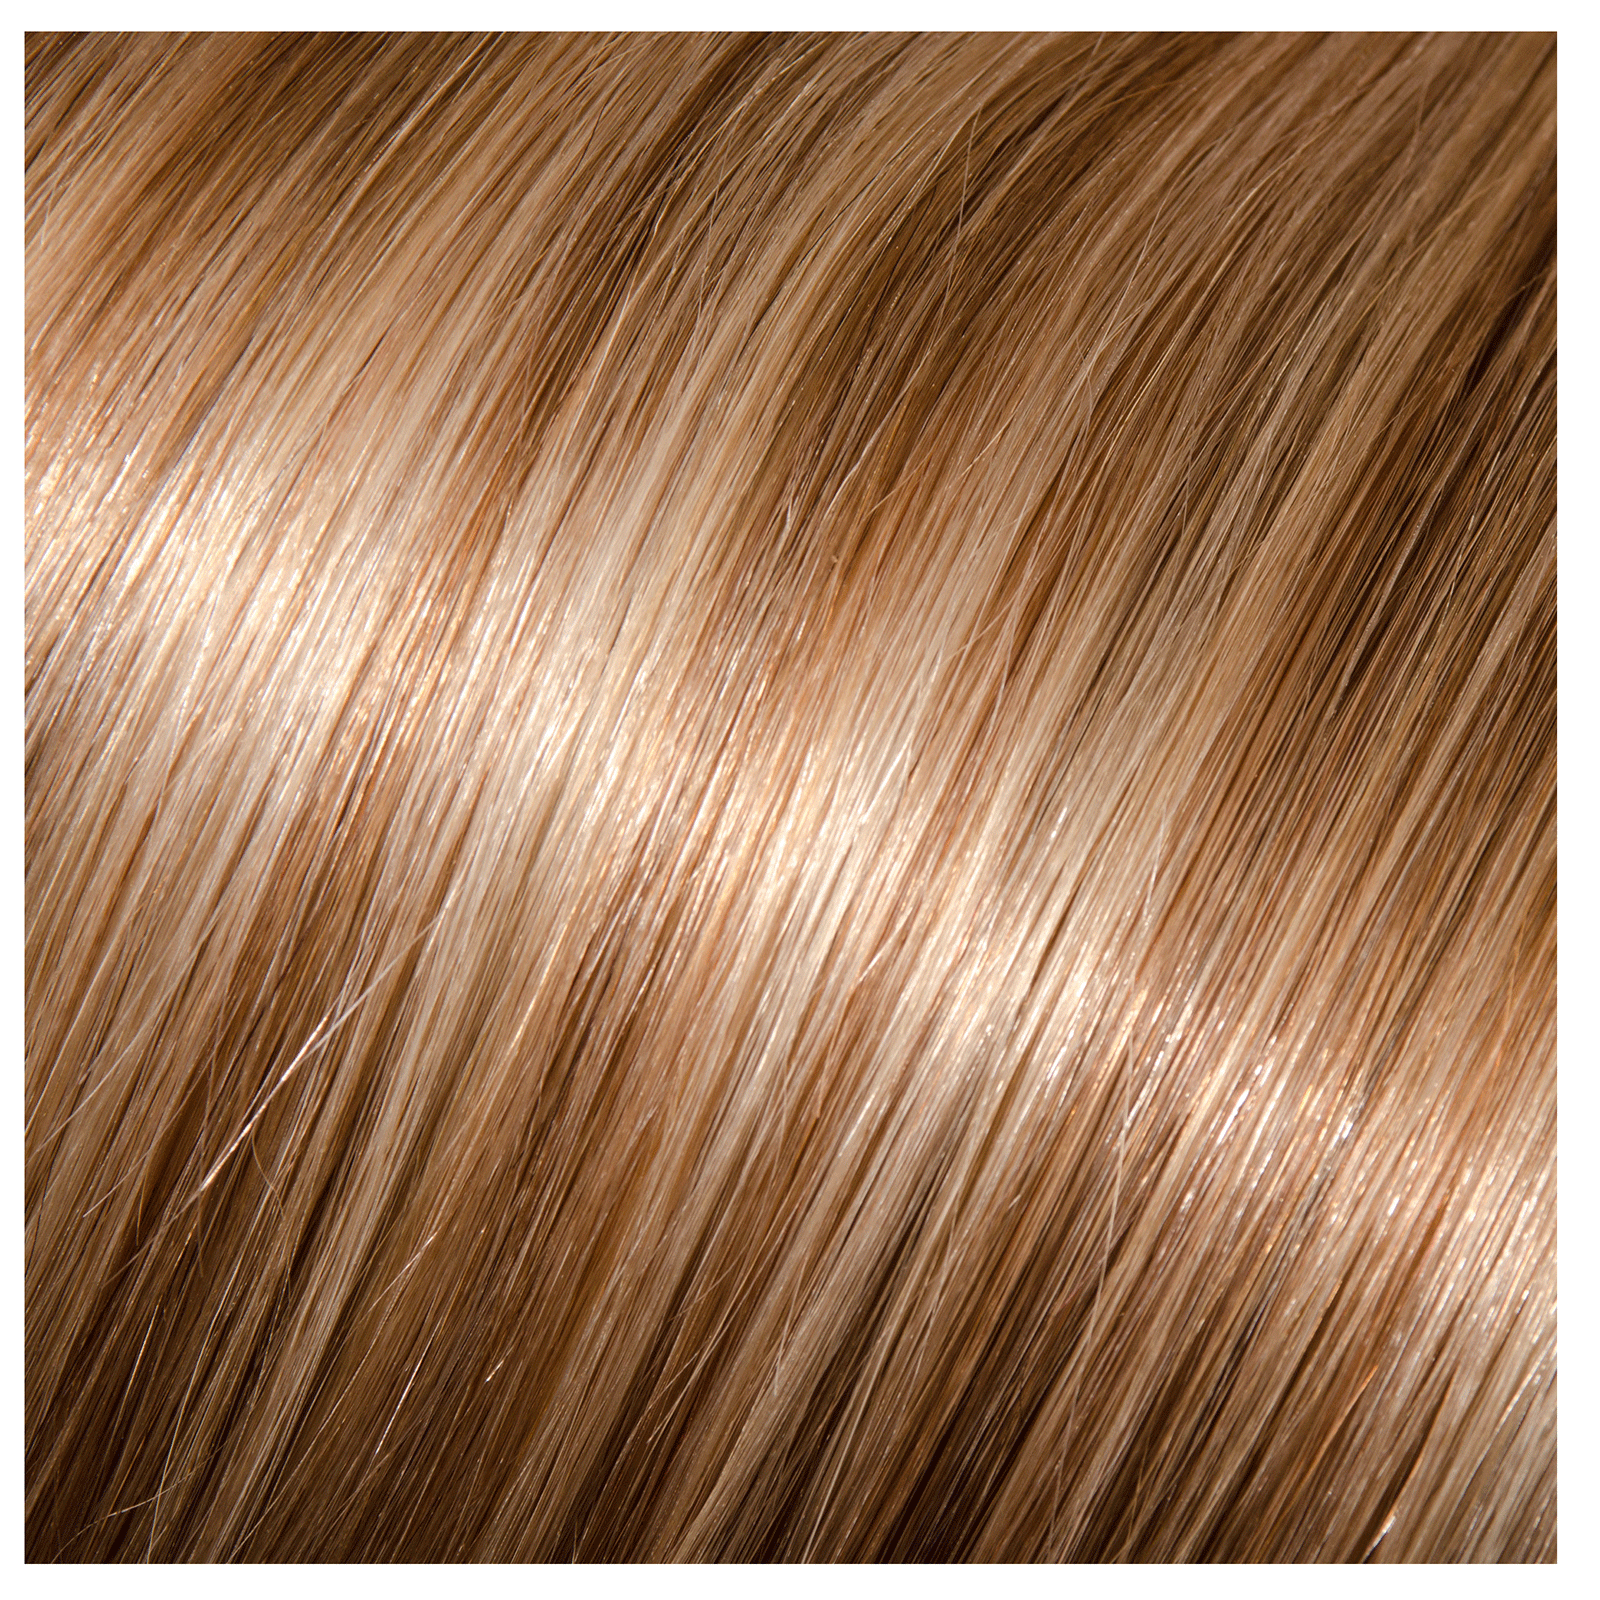 Tape In Hair Extension 18 Inch 12600 Caroline Babe Hair